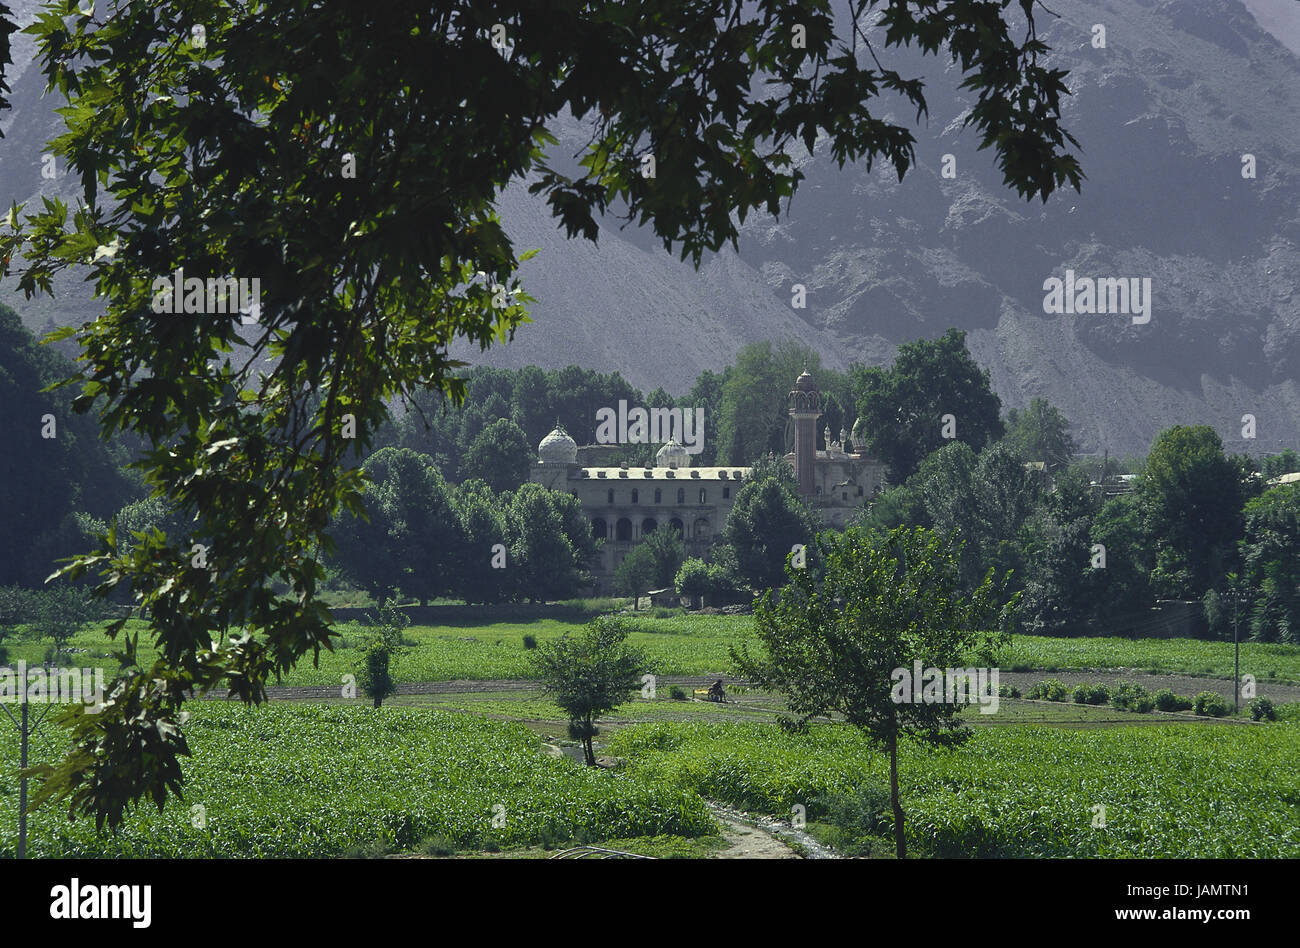 Pakistan,Chitral,mosque,fields,Asia,green,Islam,scenery,nature,travel,religion,tourism,vacation,vegetation,meadows,church,sacred - Stock Image